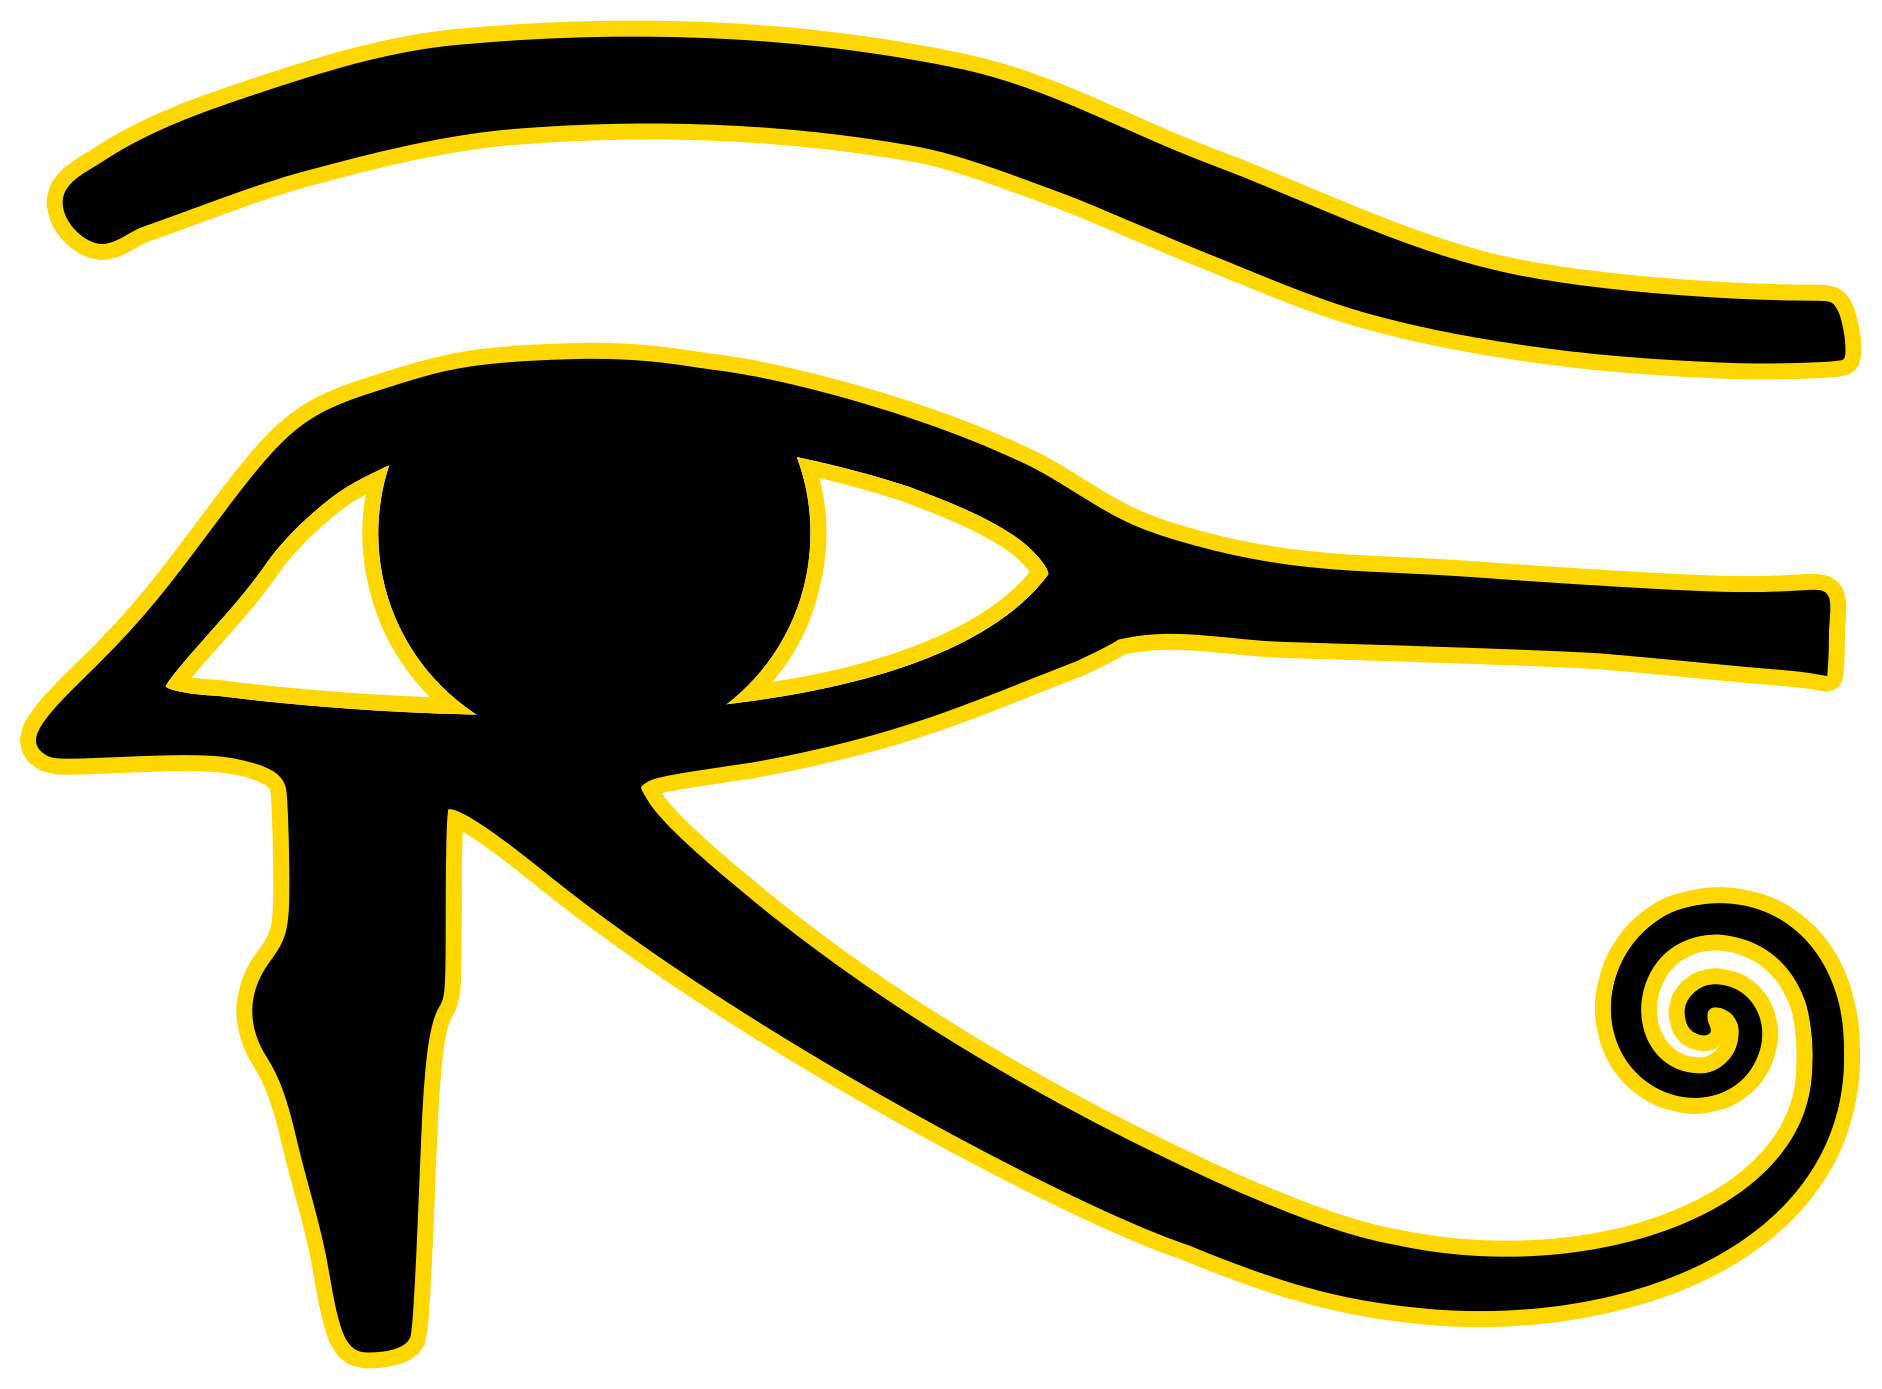 Eye of Horus - Left - I am using this in the most general sense of being a Pagan eye symbol. I love this symbol, and it appeared to me in golden laser light with my eyes closed after a particularly dramatic lucid dream. So I use with RESPECT for whoever sent me that symbol.  Their technology is way over my head. They have total stealth, total telepathy, artificial general superintelligence and unlimited computing power. They can render any conceivable scene or situation in the most expert and dramatic and entertaining of ways. Expert lighting.  Expert coloring. Expert costumes. Expert casting of dream characters. Perfect modeling. Perfect looks. Perfect personalities. Expert direction. Expert special effects. Interactive force fields and modified gravity. Time travel. Time reversal. Time control.